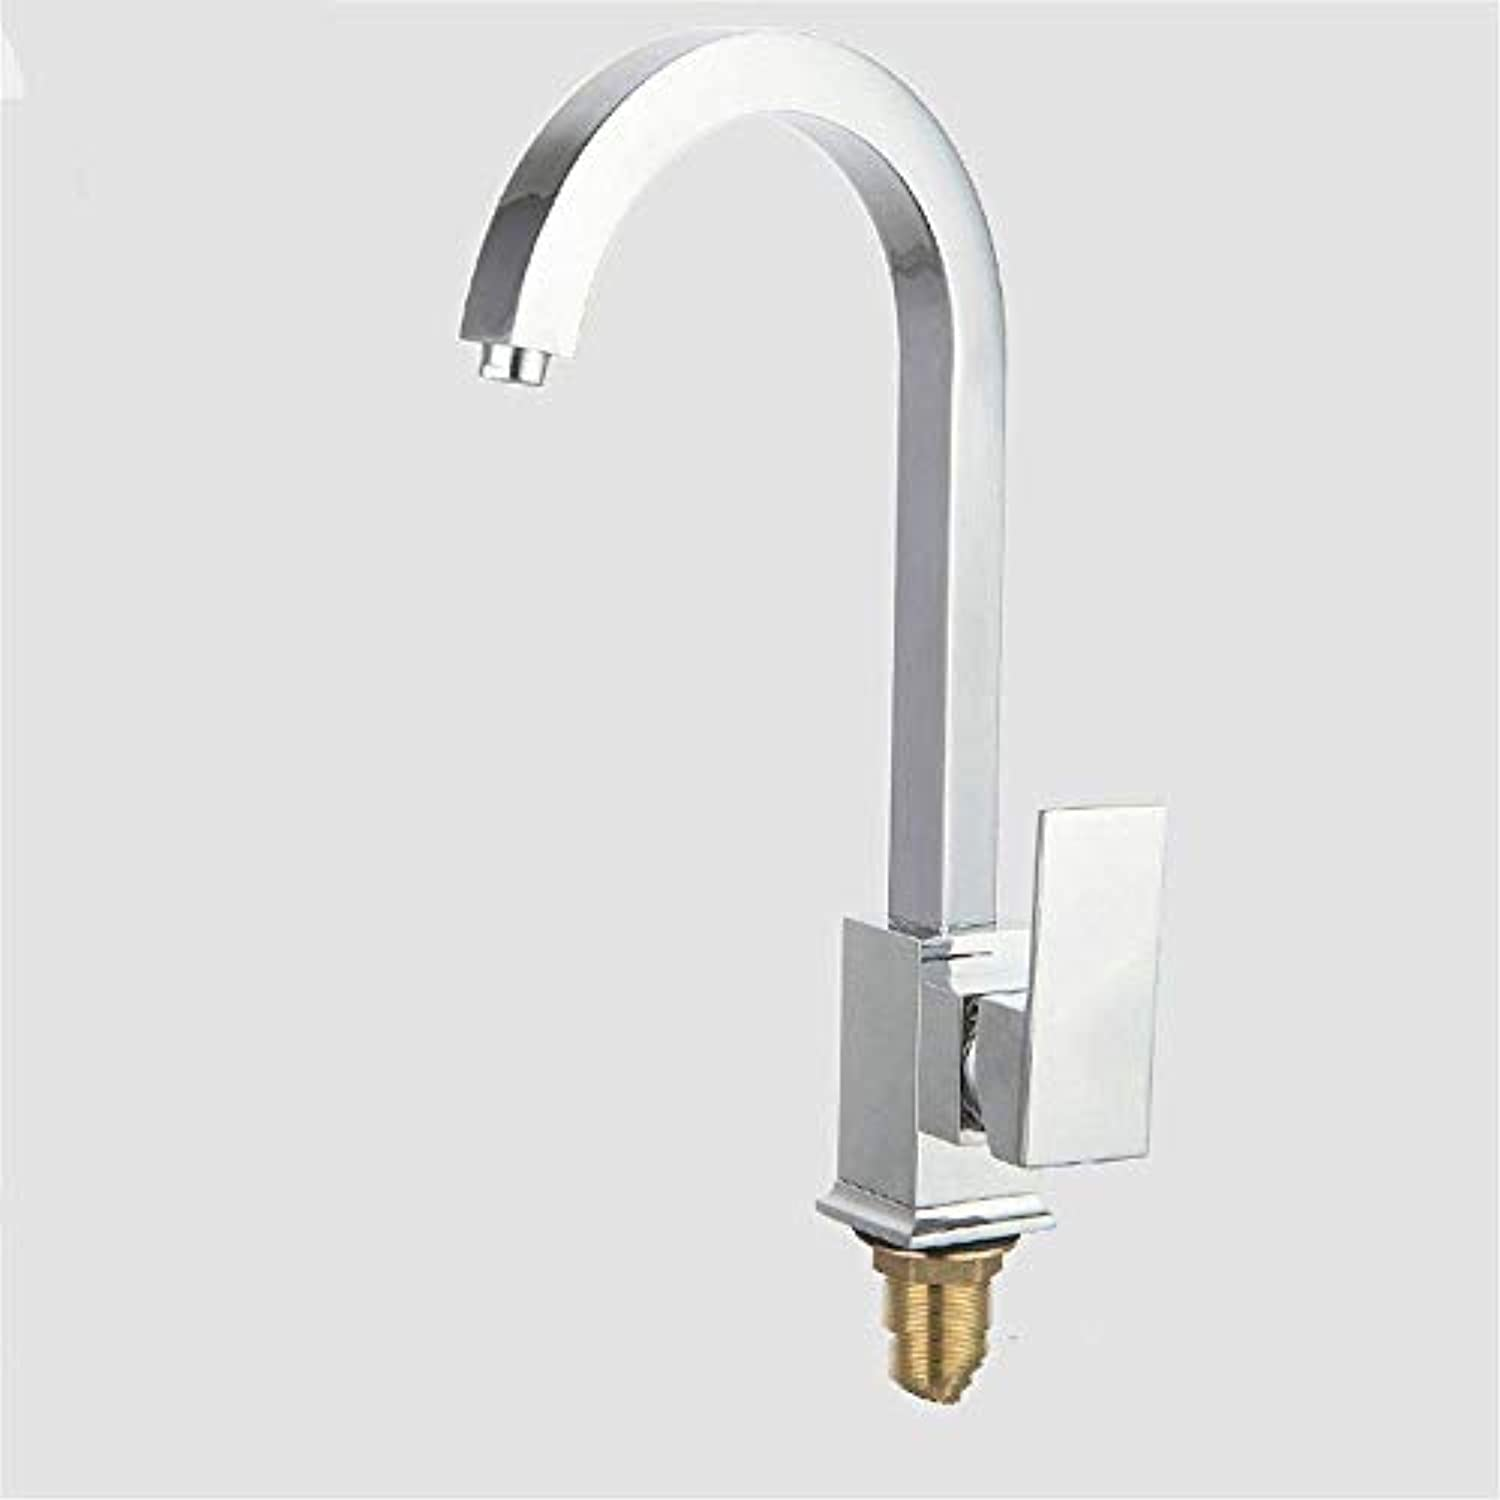 Copper Kitchen Faucet Cold and Hot Water Mixer Kitchen Sink Faucet Thickened Plated Square Single Handle Rotatable